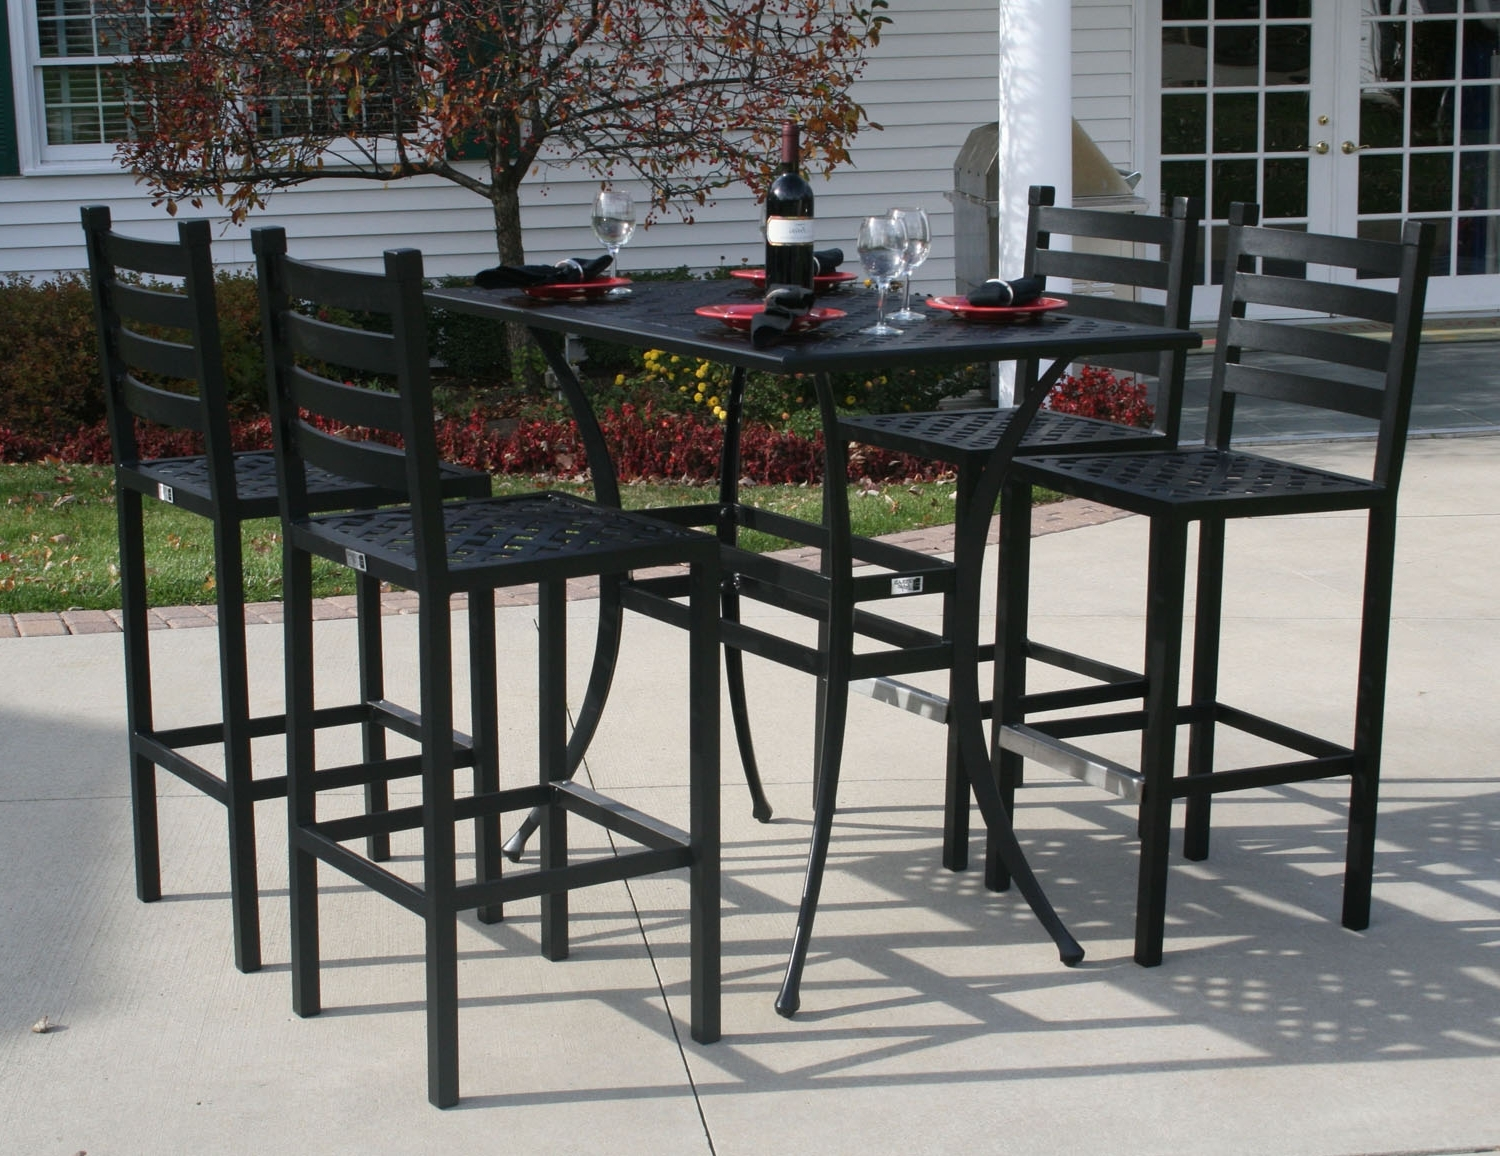 Patio Umbrellas For Bar Height Tables Pertaining To Popular Ansley Luxury 4 Person All Welded Cast Aluminum Patio Furniture Bar (View 12 of 20)